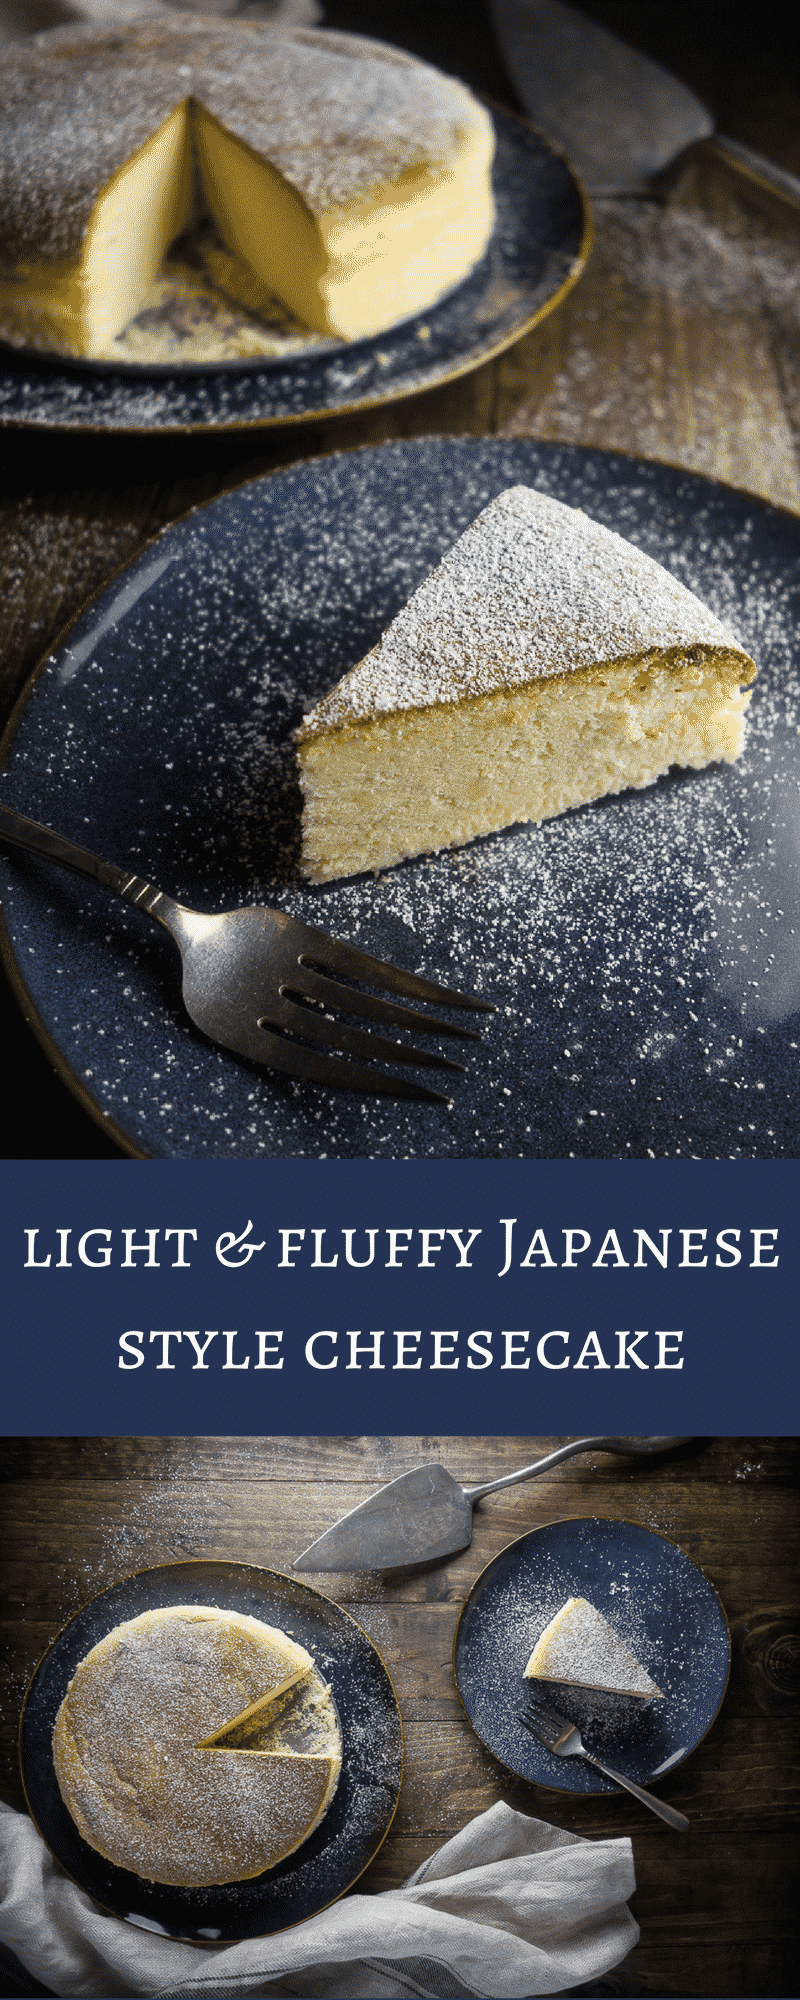 This light & fluffy Japanese style cheesecake (or soufflé cheesecake) will totally melt in your mouth - perfect for that cheesecake lover in your life! japanese cheesecake recipe | soft fluffy Japanese cheesecake | Japanese desserts | Japanese recipes | soufflé cheesecake | airy Japanese cheesecake | Japanese cotton cheesecake | creamy Japanese cheesecake | best cheesecake